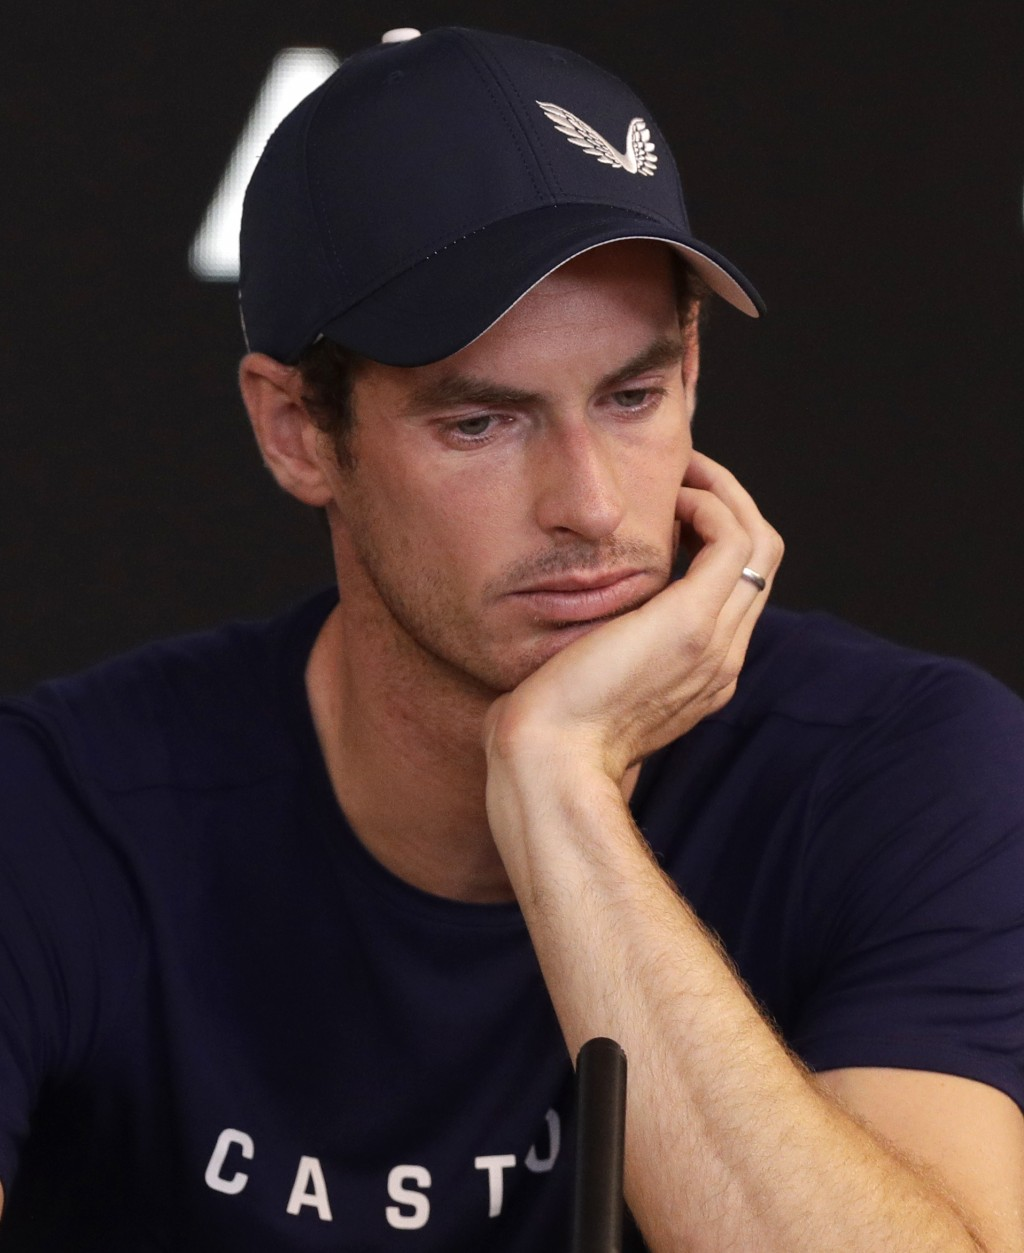 Britain's Andy Murray reacts during a press conference at the Australian Open tennis championships in Melbourne, Australia, Friday, Jan. 11, 2019. A t